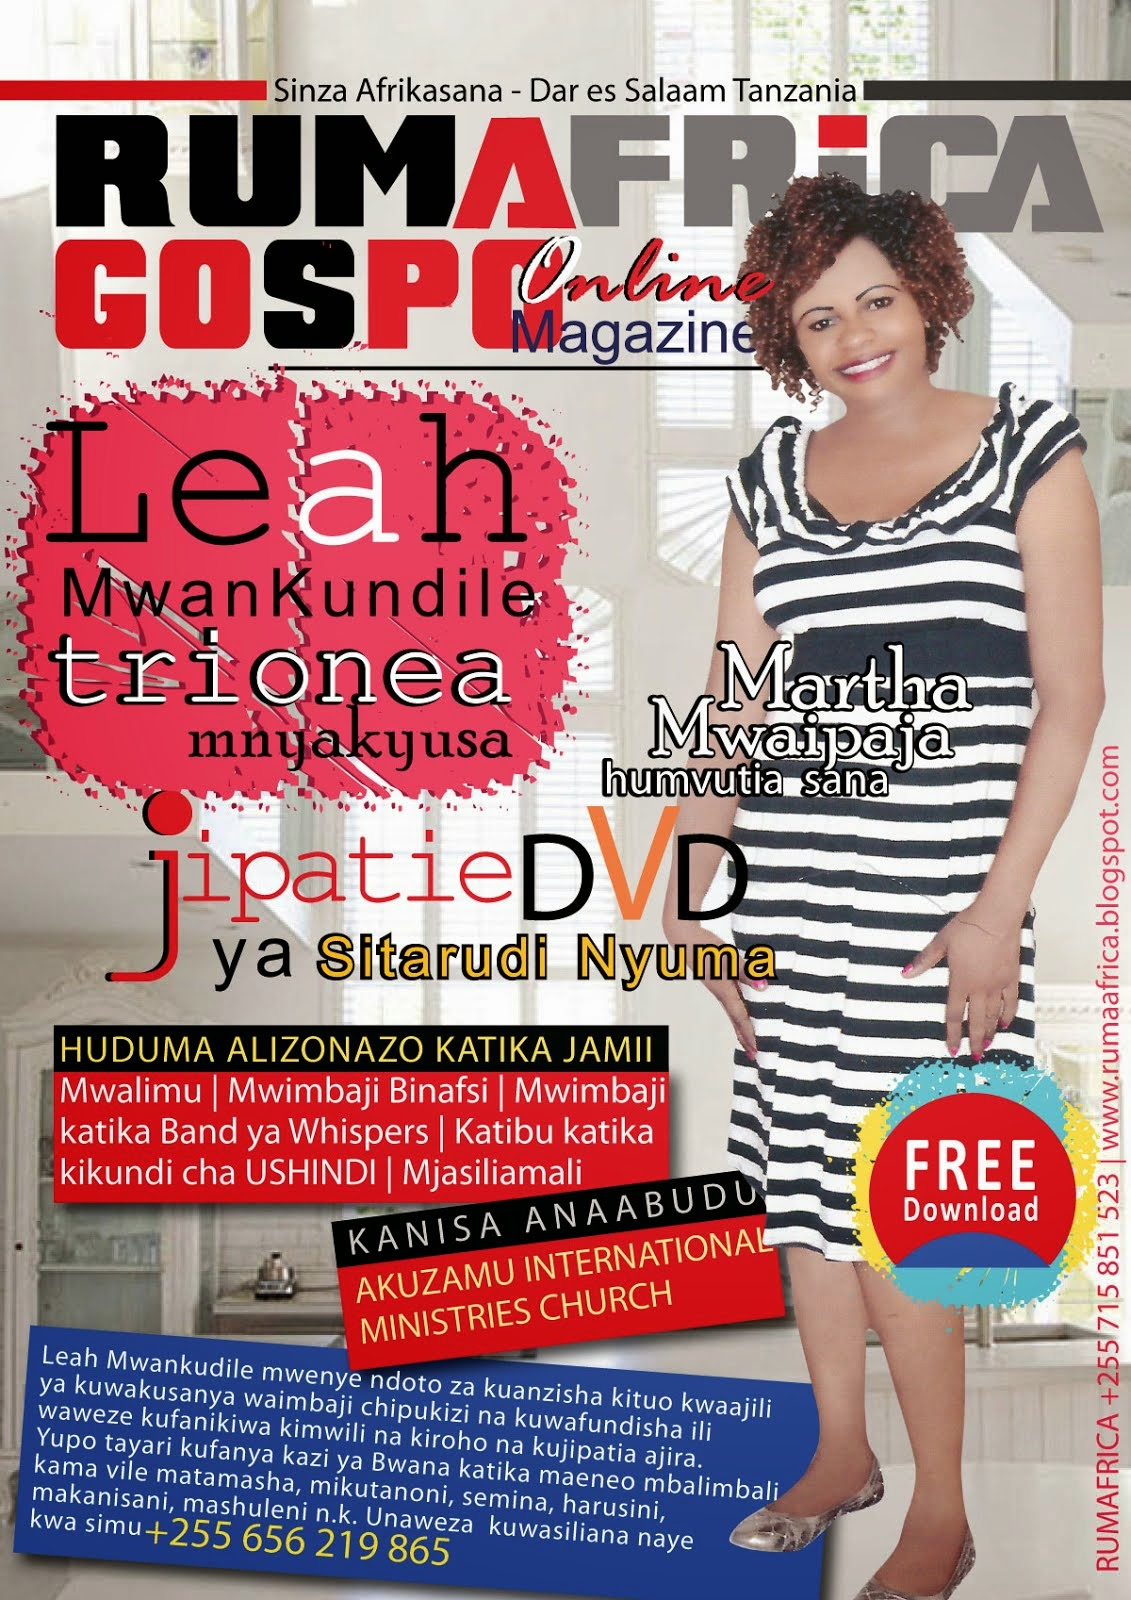 LEAH MWANKUNDILE AMEACHIA VIDEO YAKE YOUTUBE